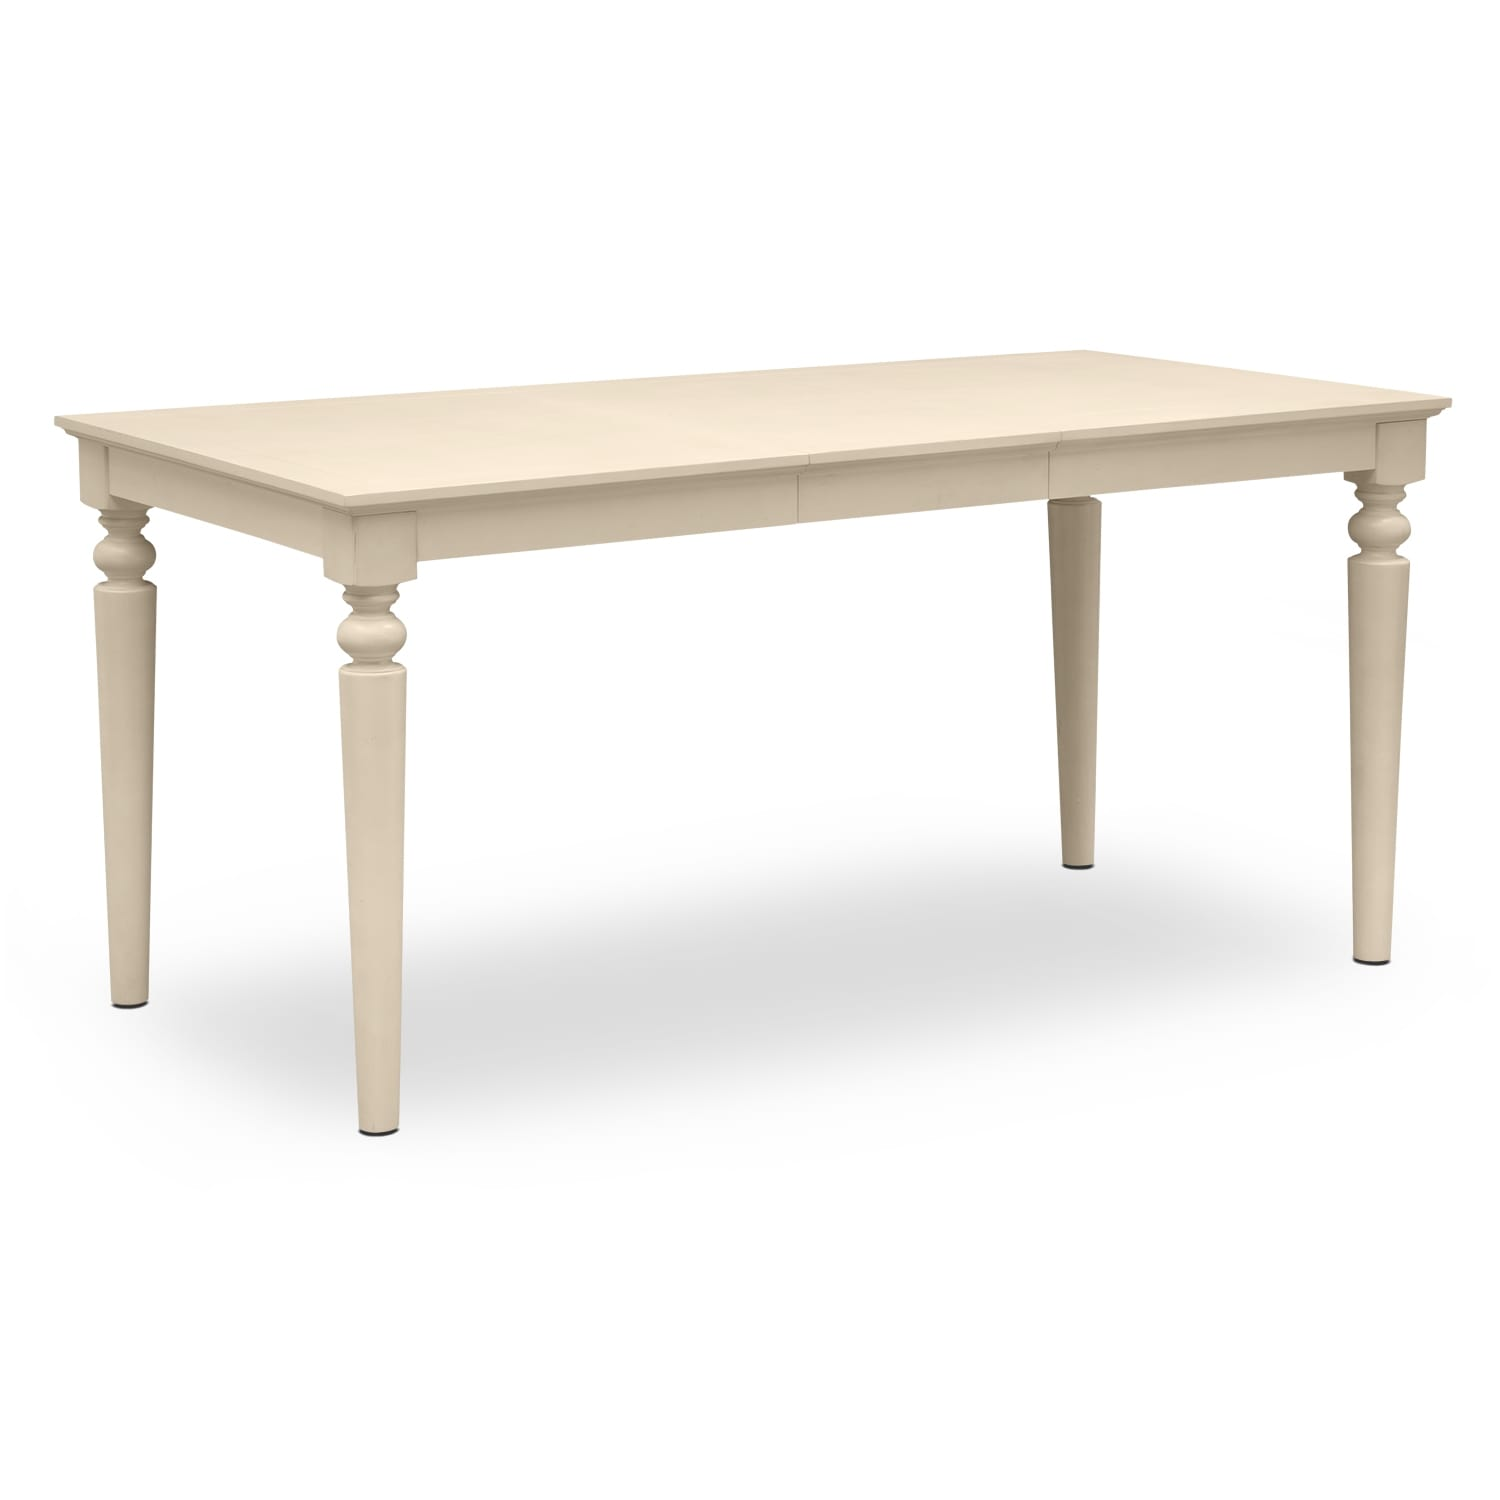 Carnival white ii dining room counter height table value for What size dining table for 10x12 room